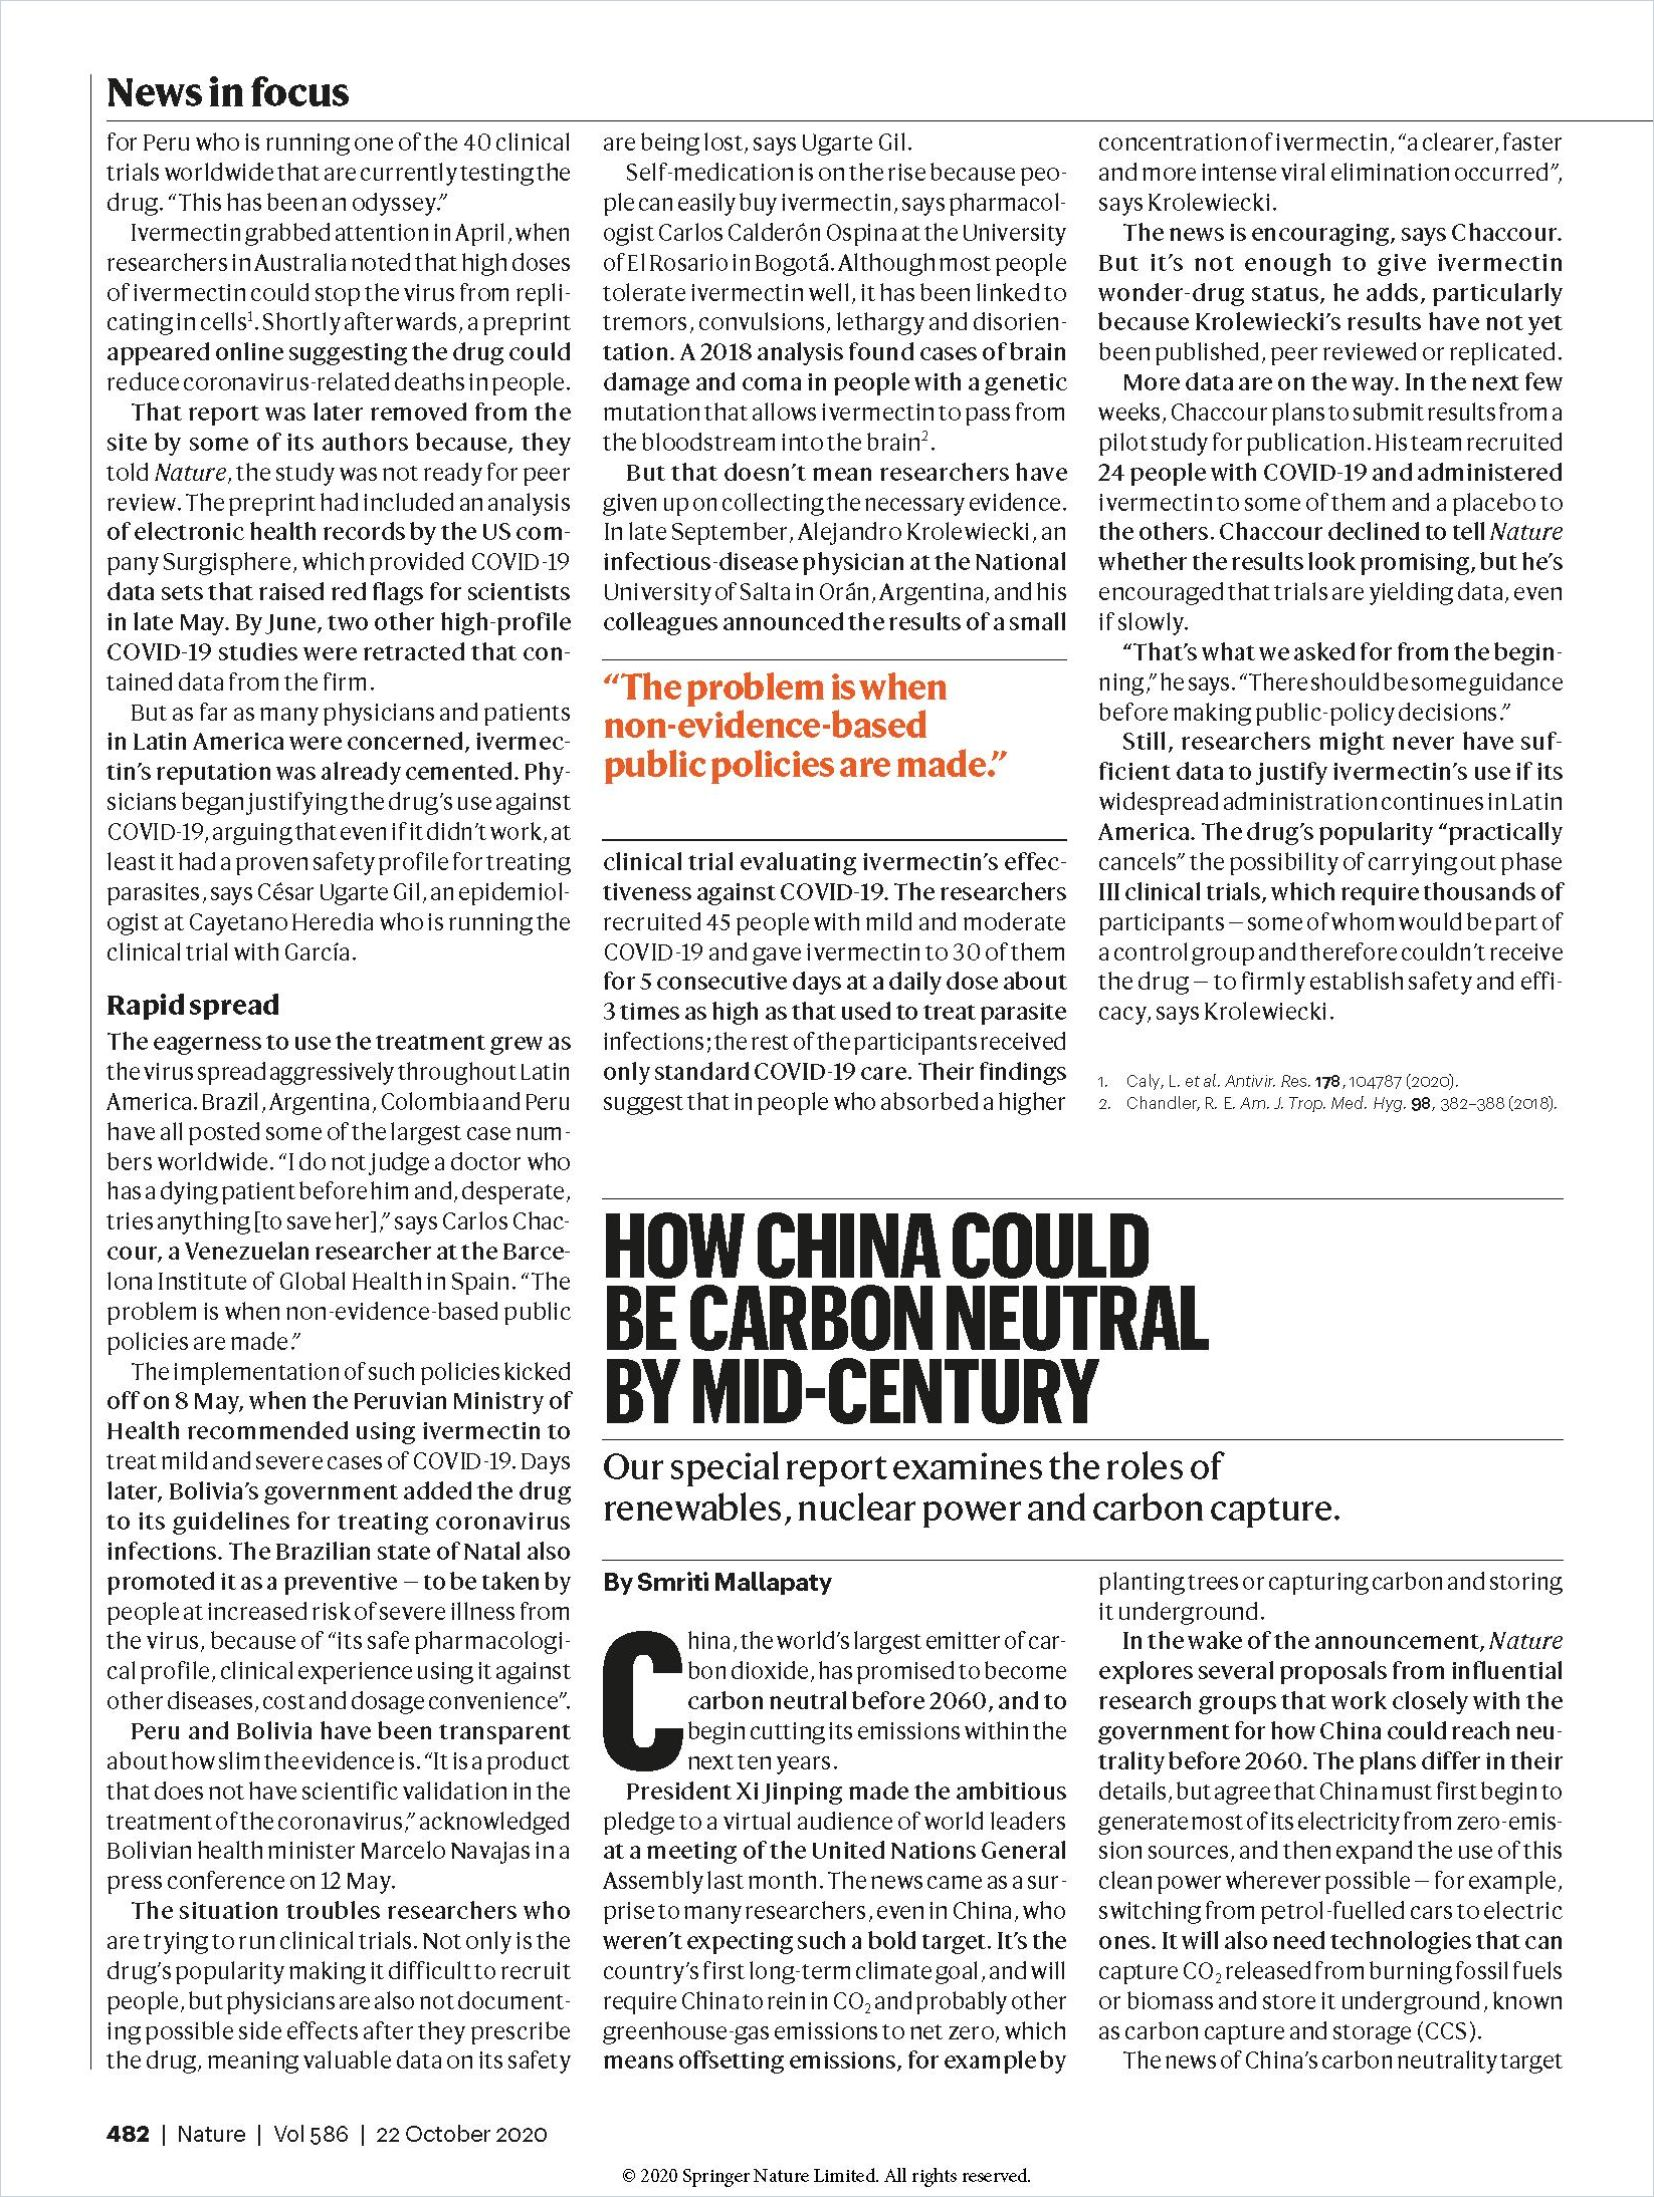 Image of: How China Could Be Carbon Neutral by Mid-Century